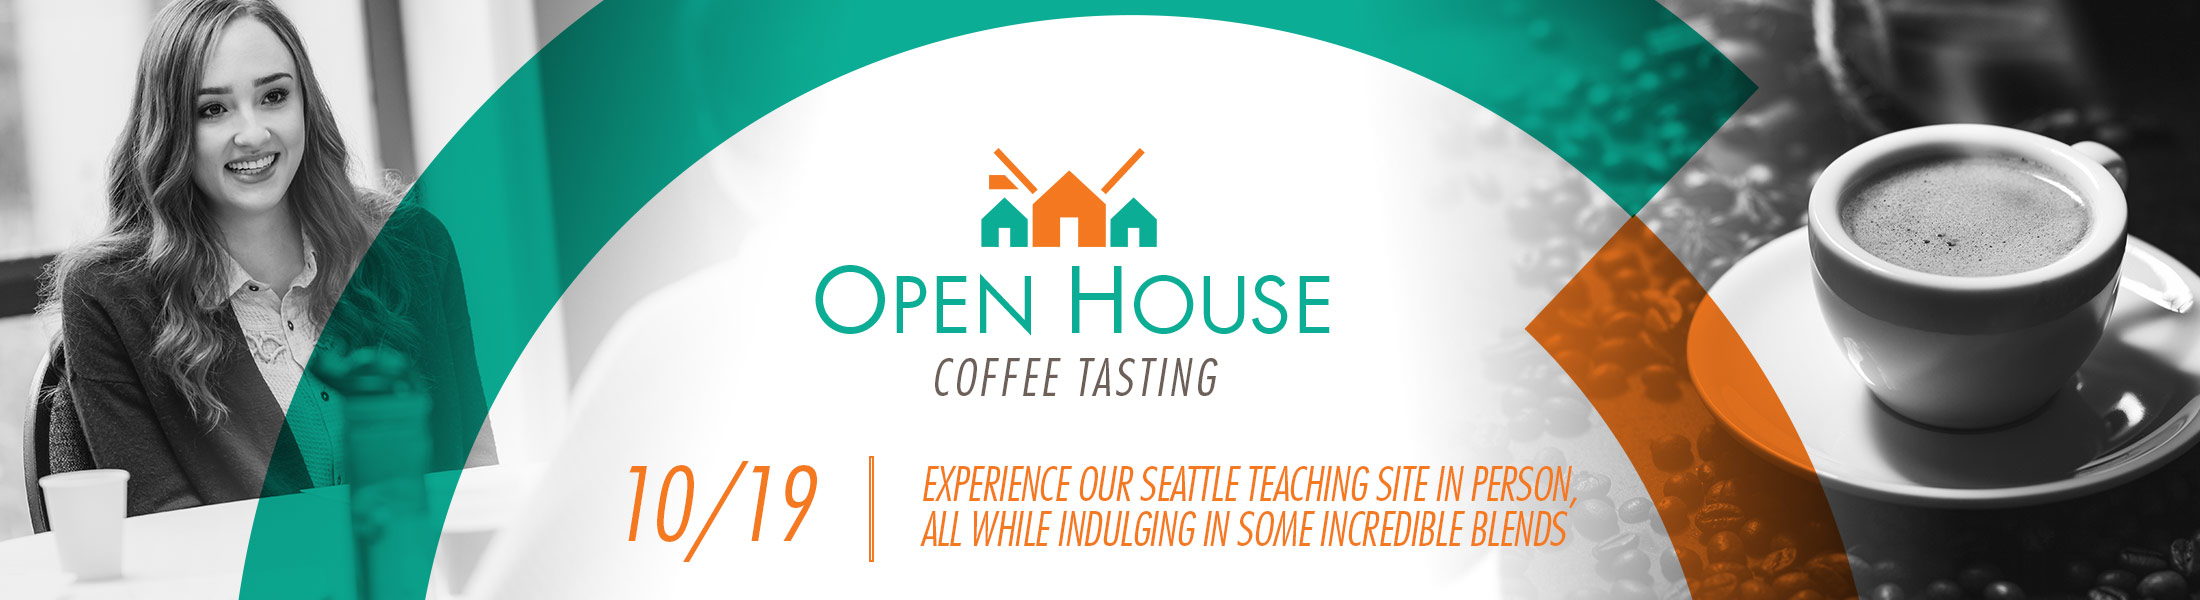 Open House Coffee Tasting